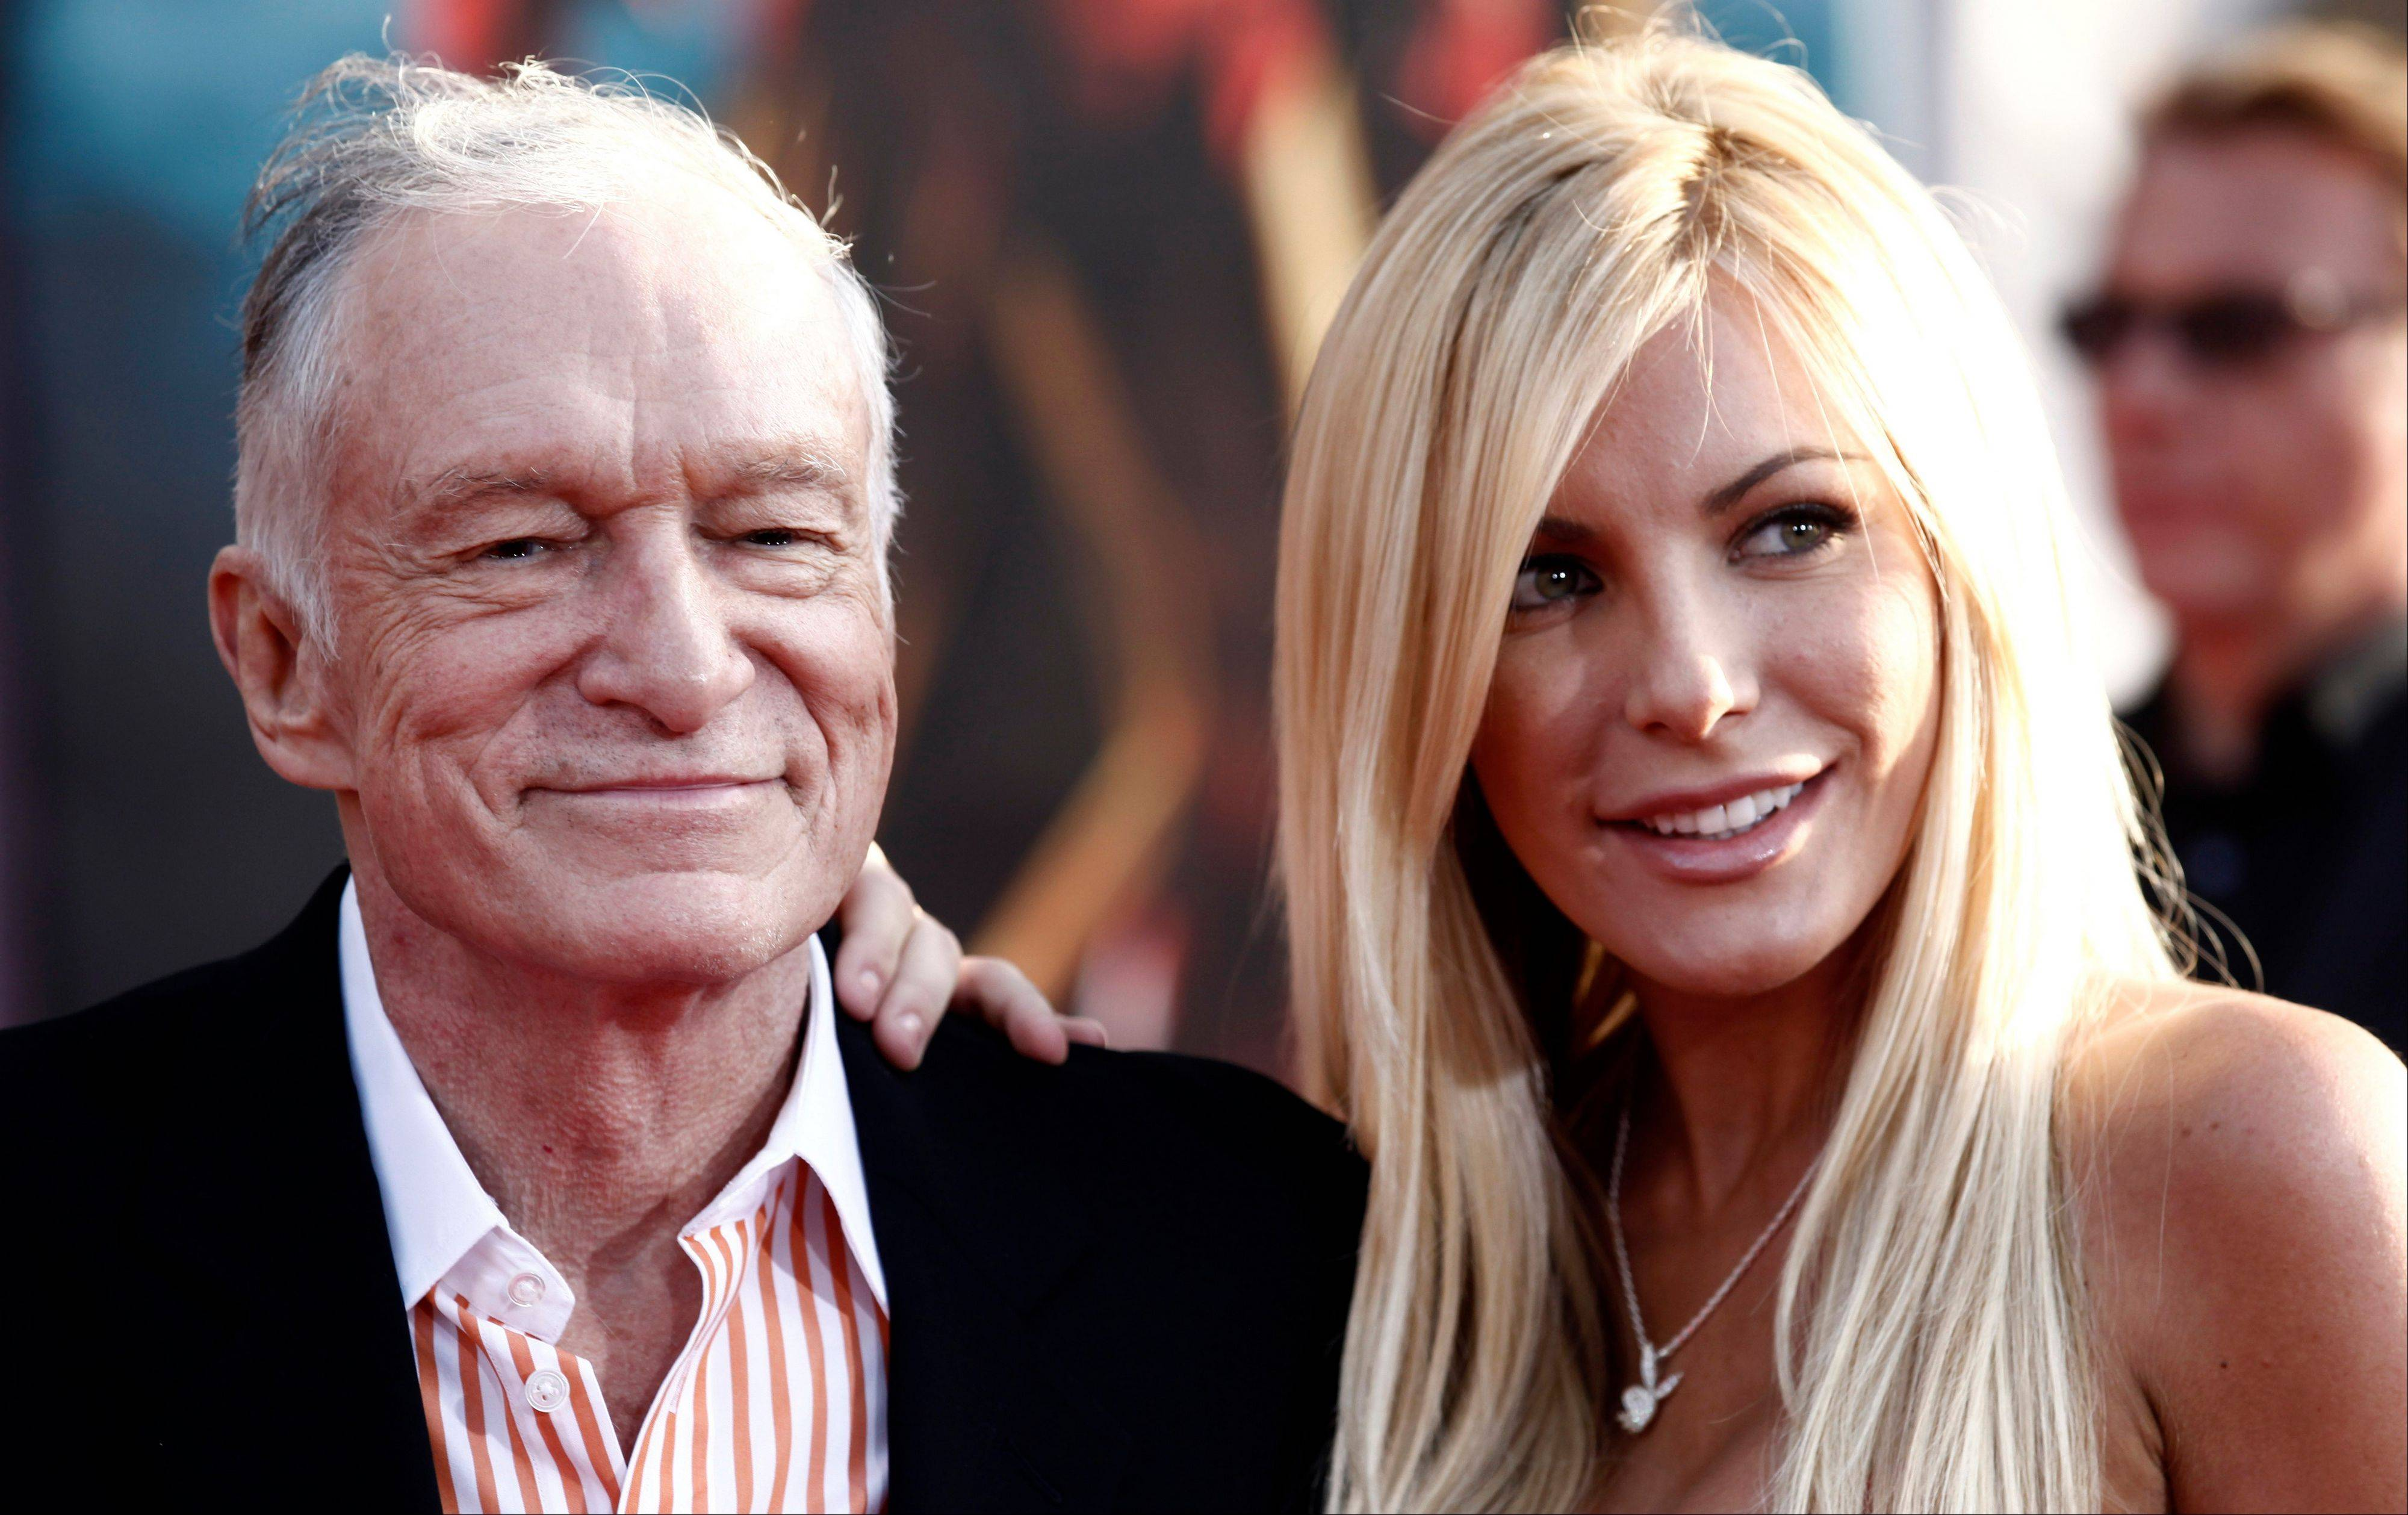 Hugh Hefner and Crystal Harris exchanged vows at a private Playboy Mansion ceremony on New Year�s Eve.